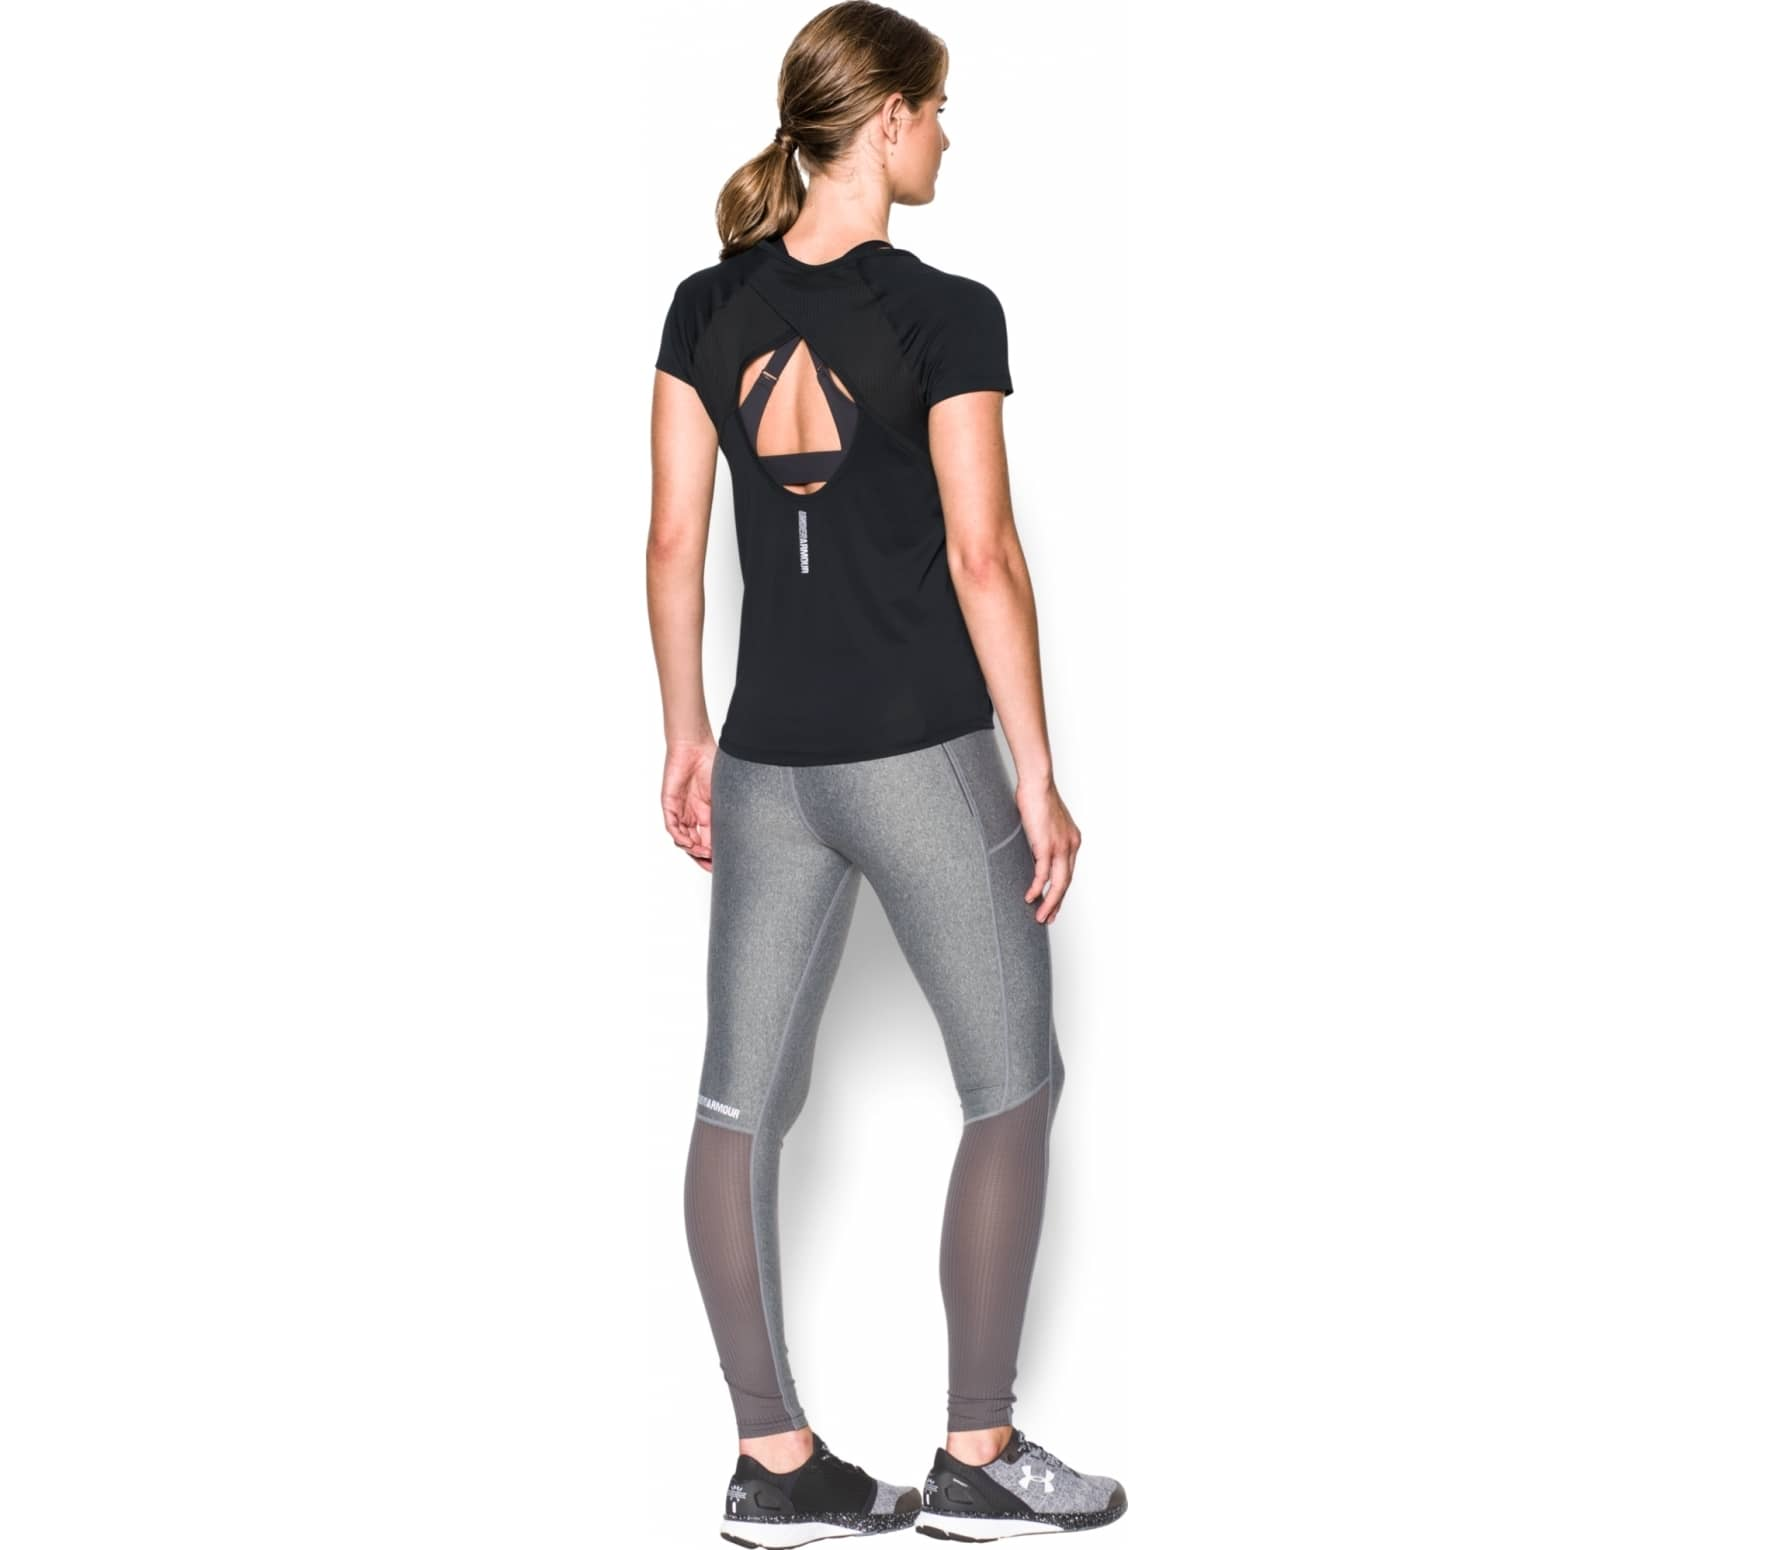 97205f4ddc0e Under Armour - Fly By women s running top (black) Køb online hos ...